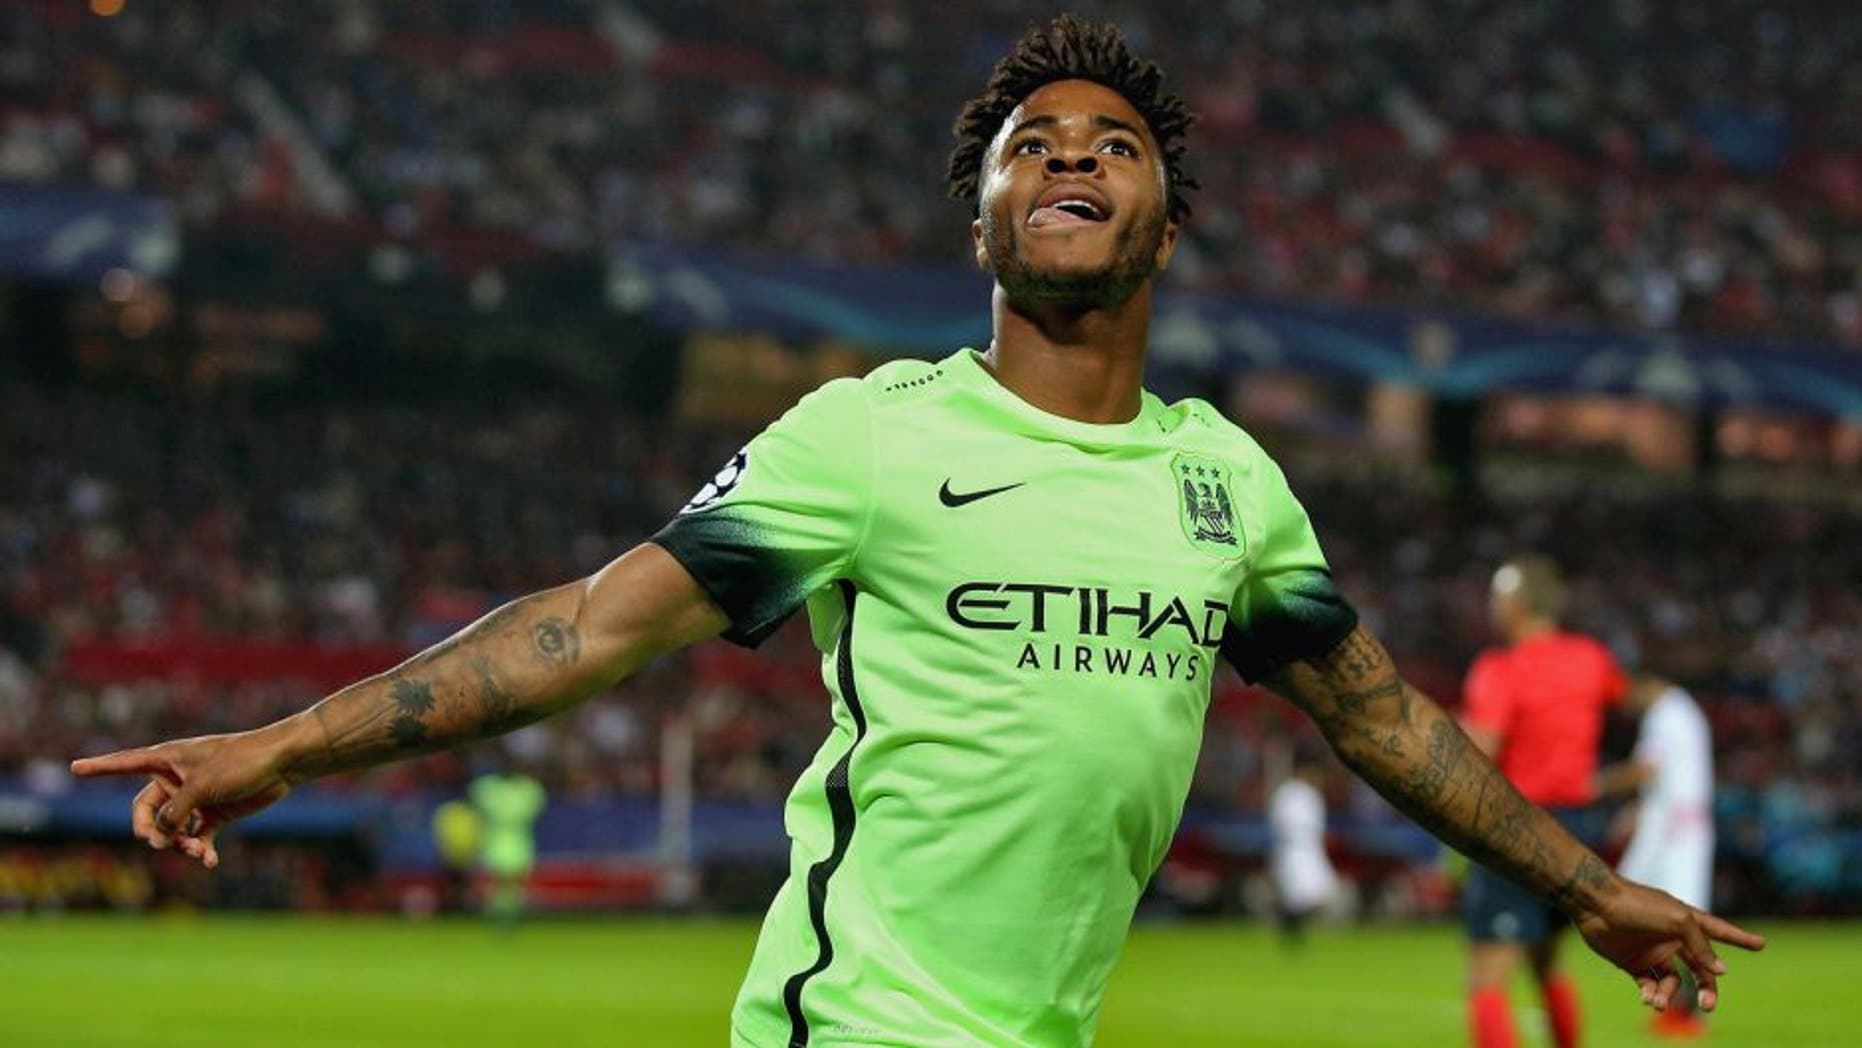 SEVILLE, SPAIN - NOVEMBER 03: Raheem Sterling of Manchester City celebrates as he scores their first goal during the UEFA Champions League Group D match between Sevilla FC and Manchester City FC at Estadio Ramon Sanchez Pizjuan on November 3, 2015 in Seville, Spain. (Photo by Ian Walton/Getty Images)